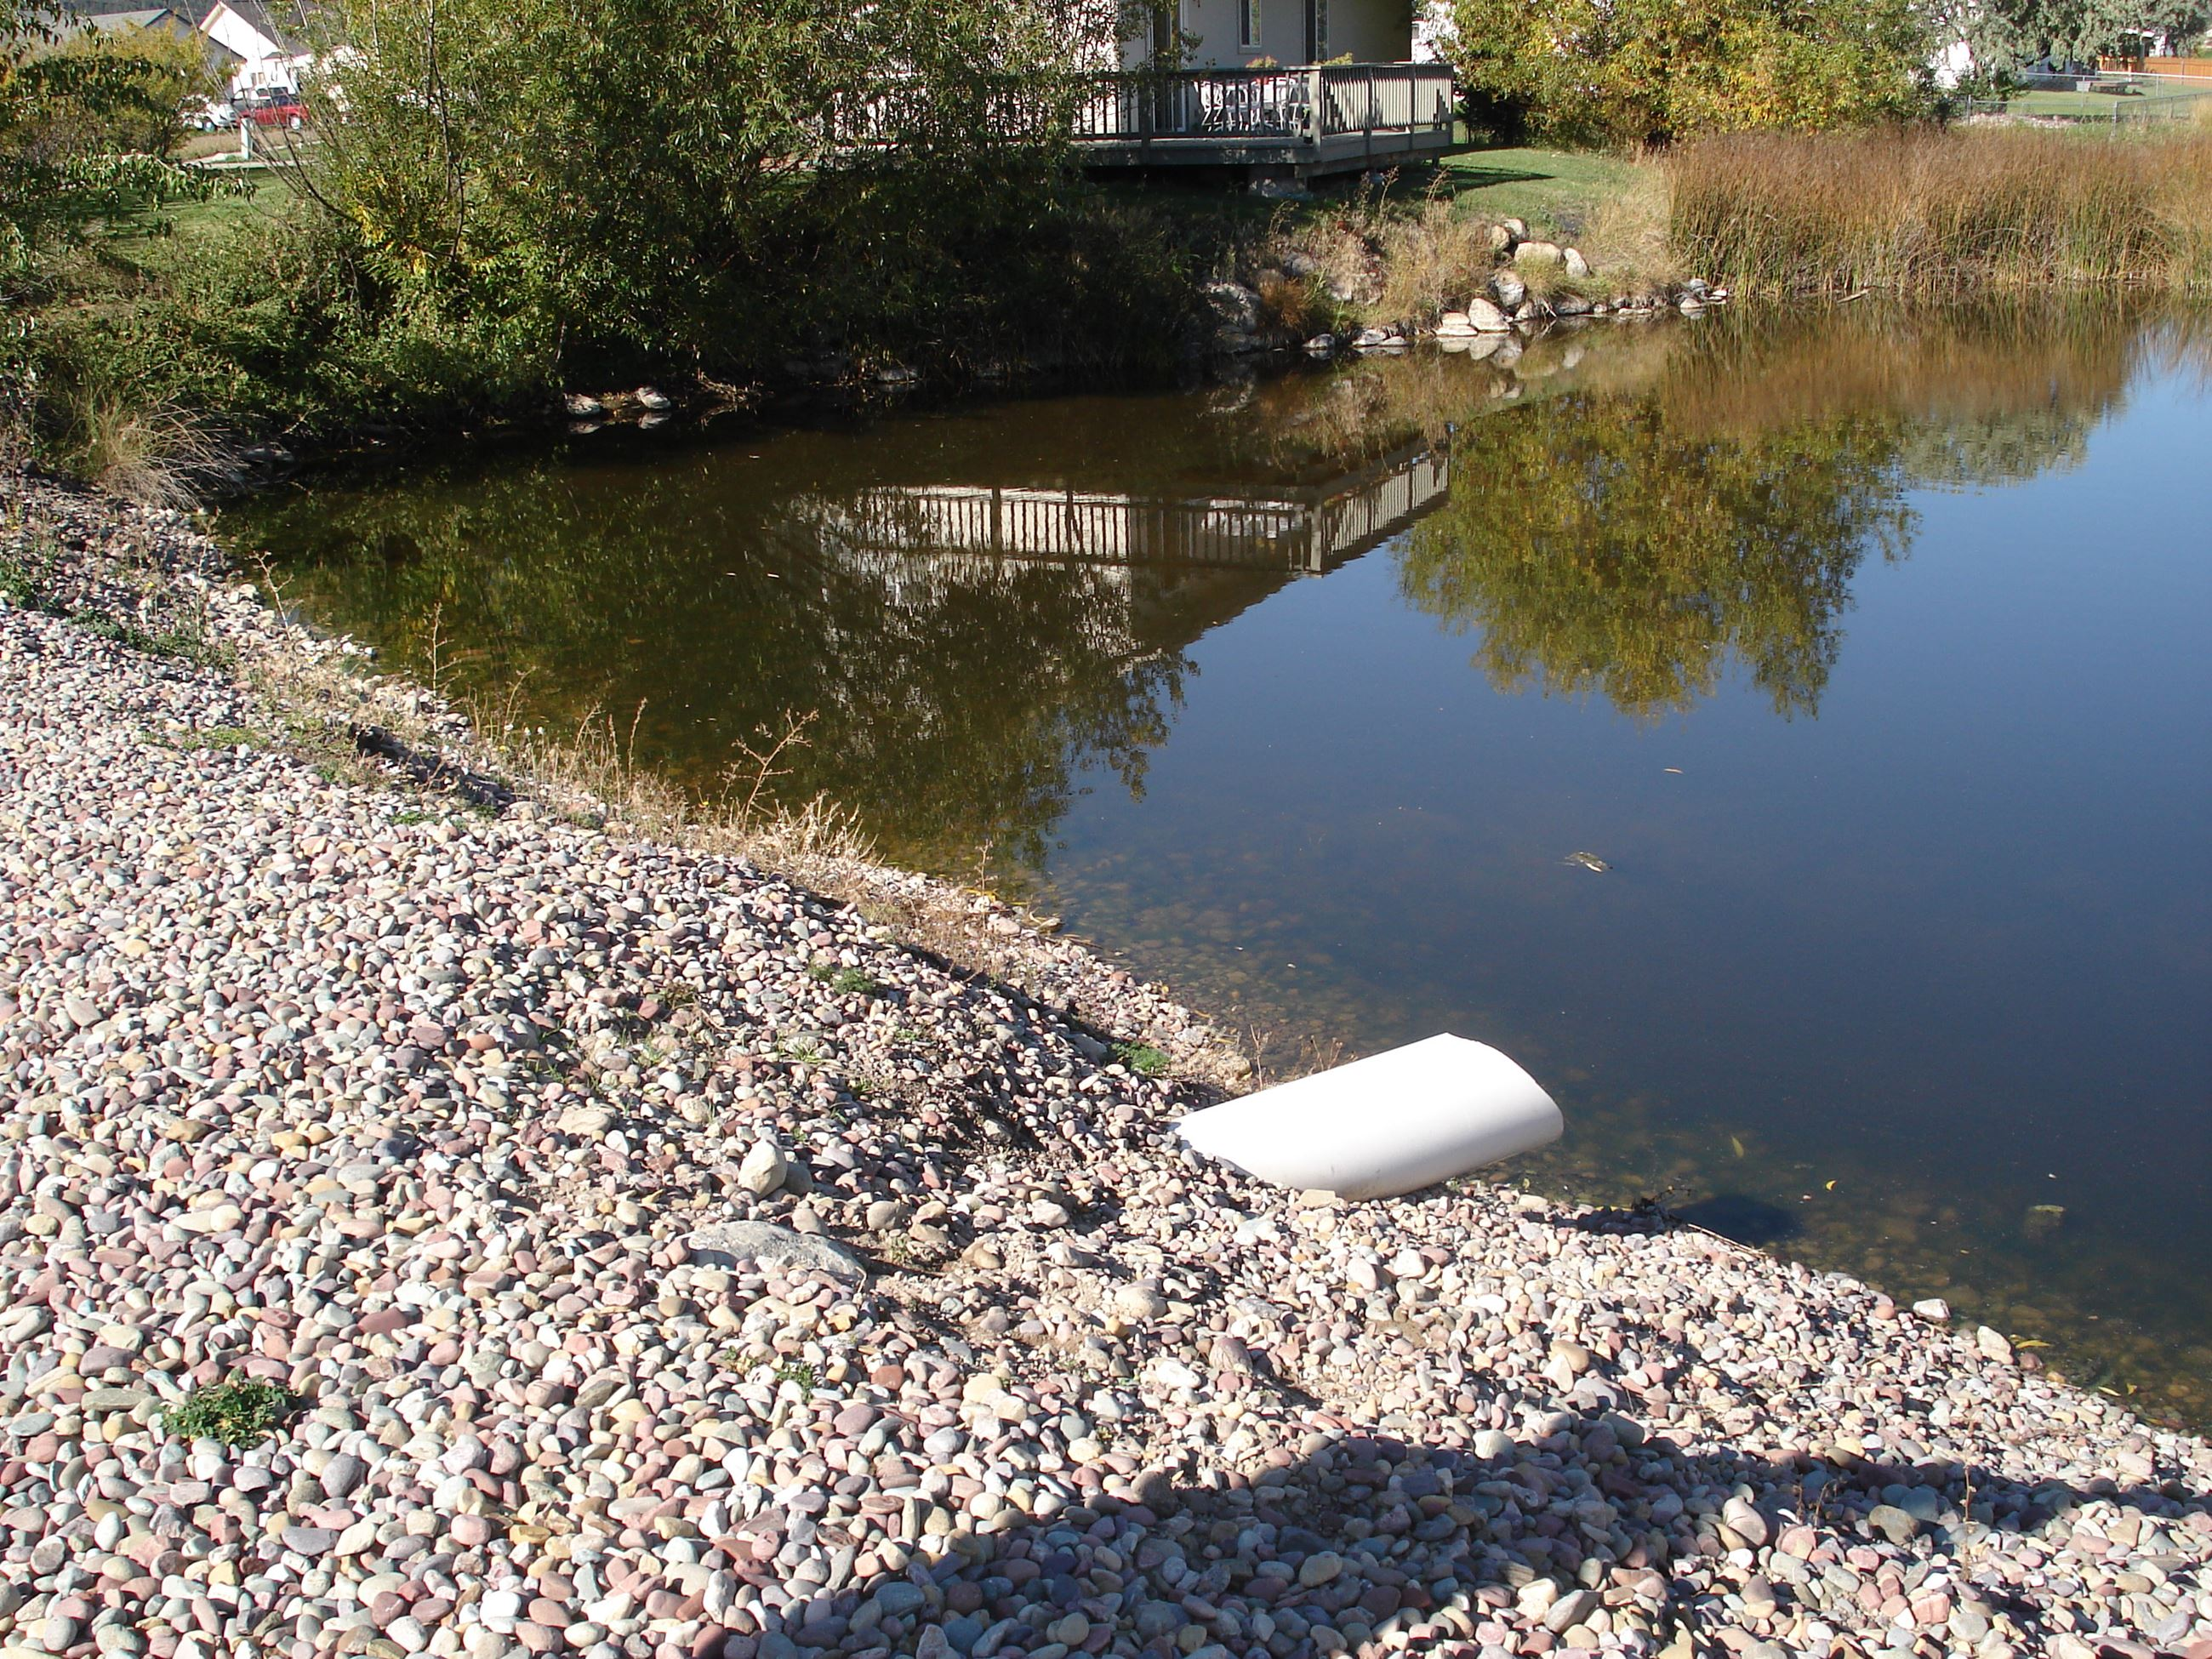 Stormwater outfall pipe into water body